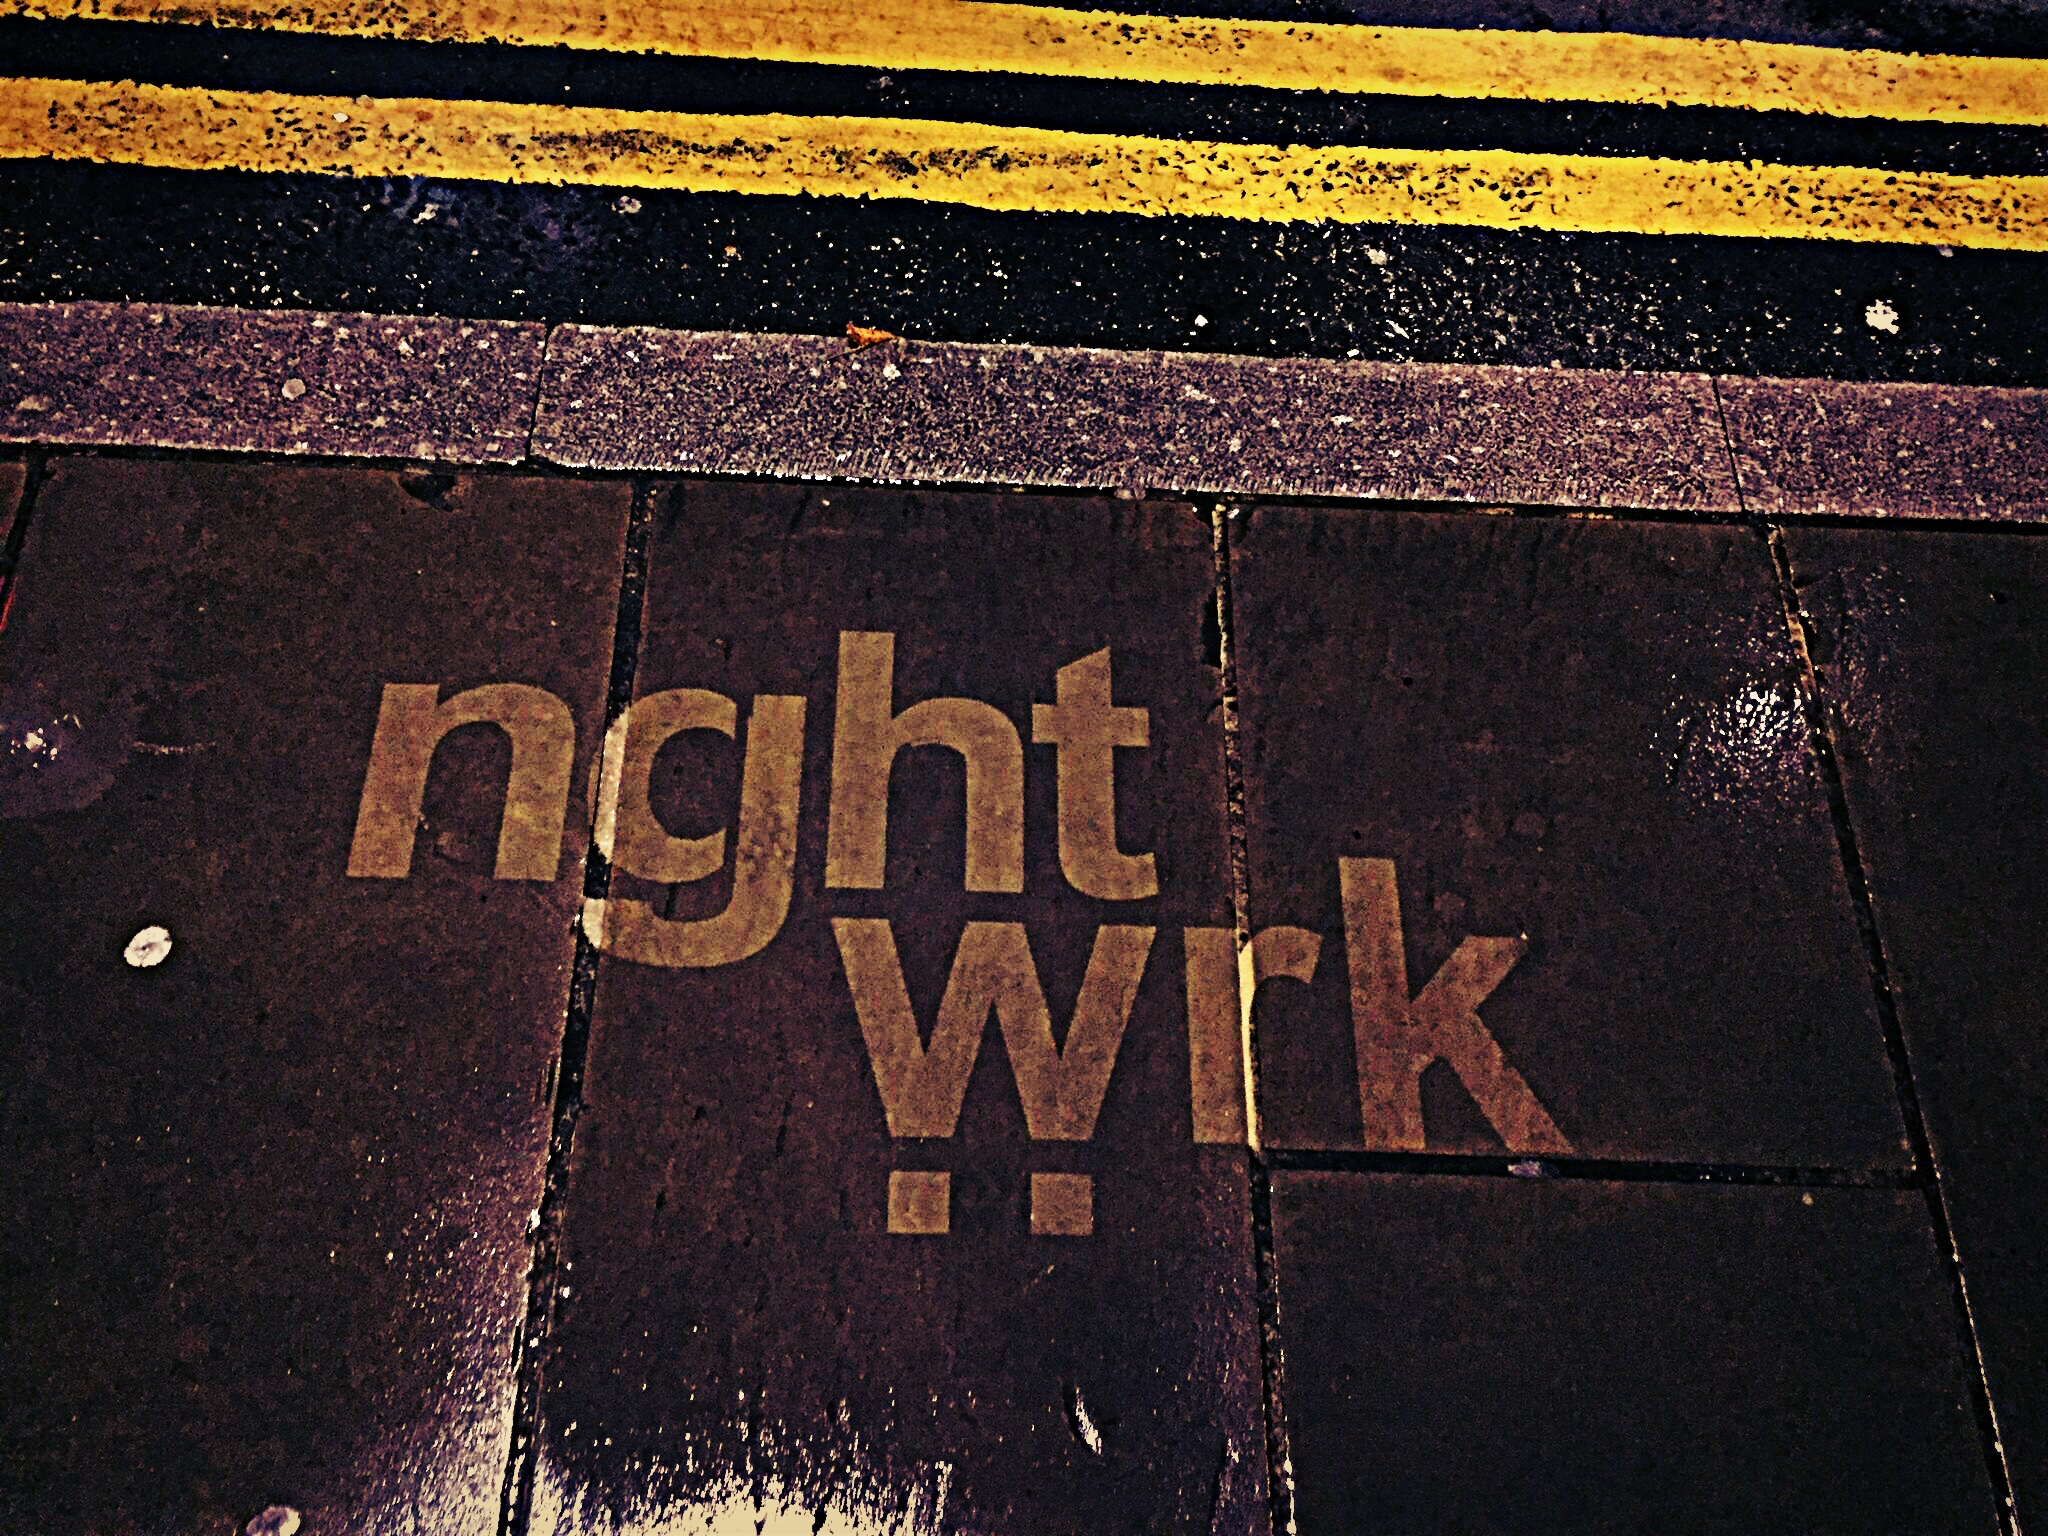 NGHTWRK